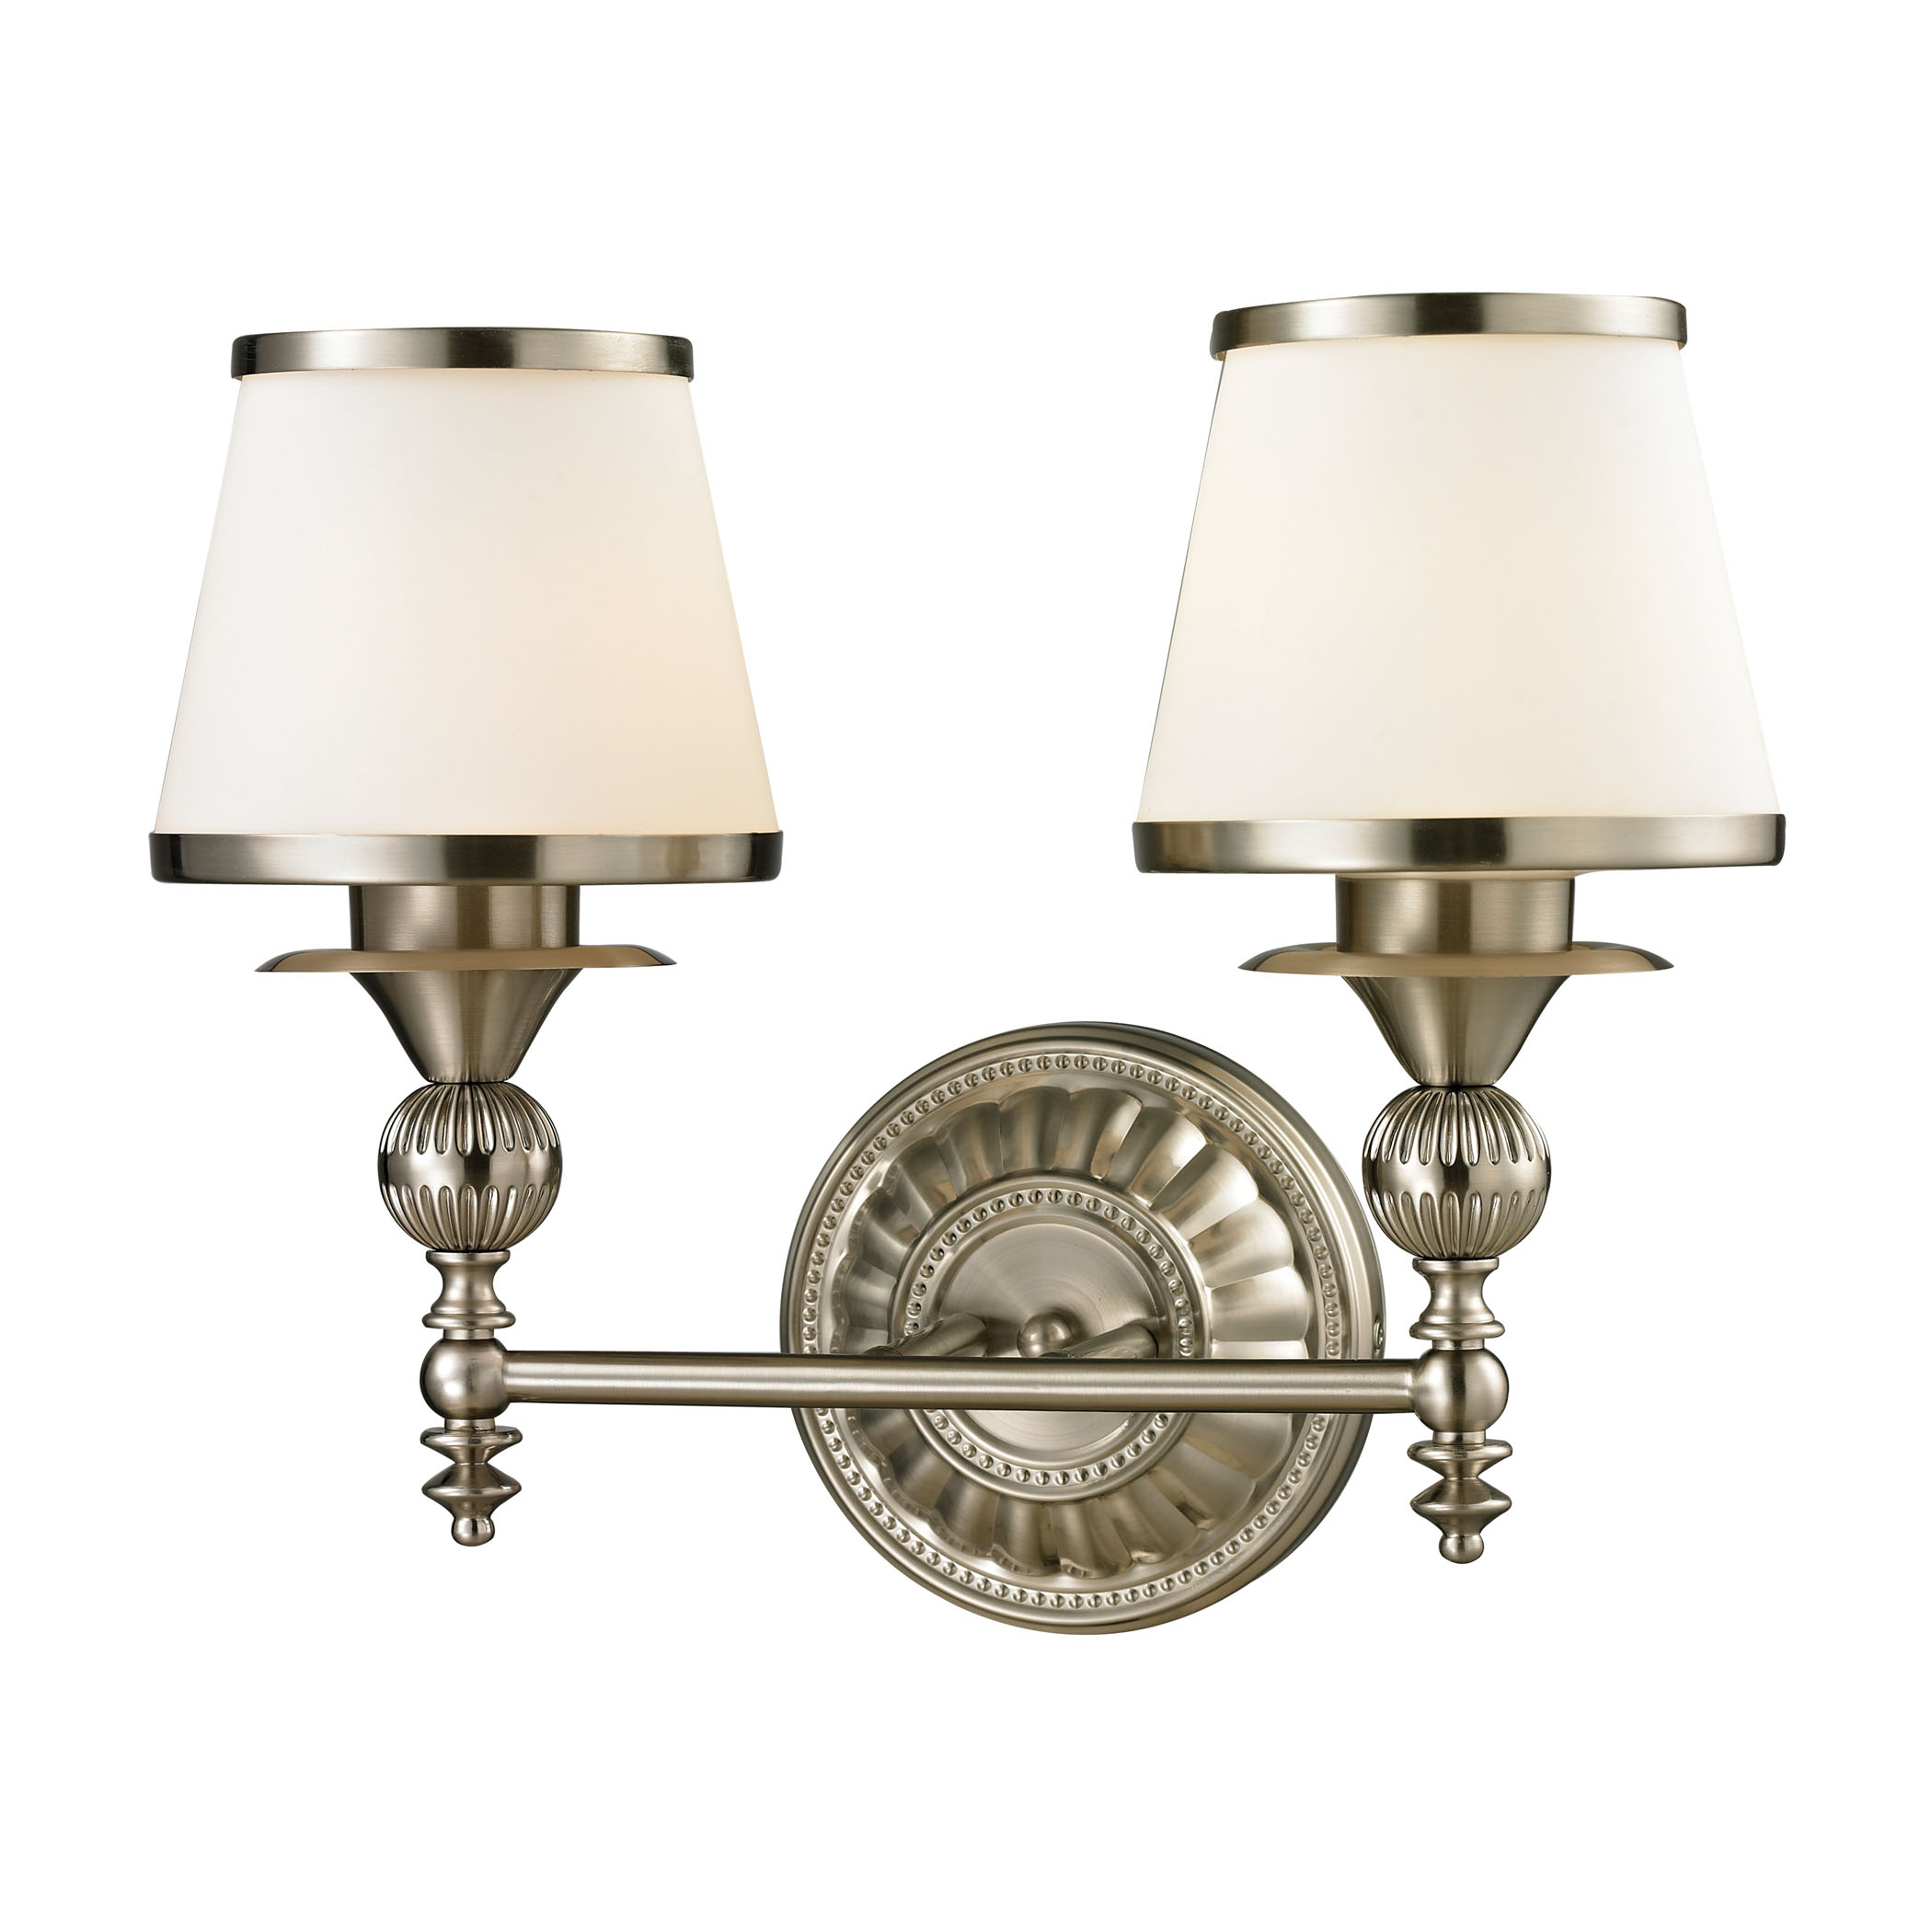 Smithfield Collection 2 light bath in Brushed Nickel